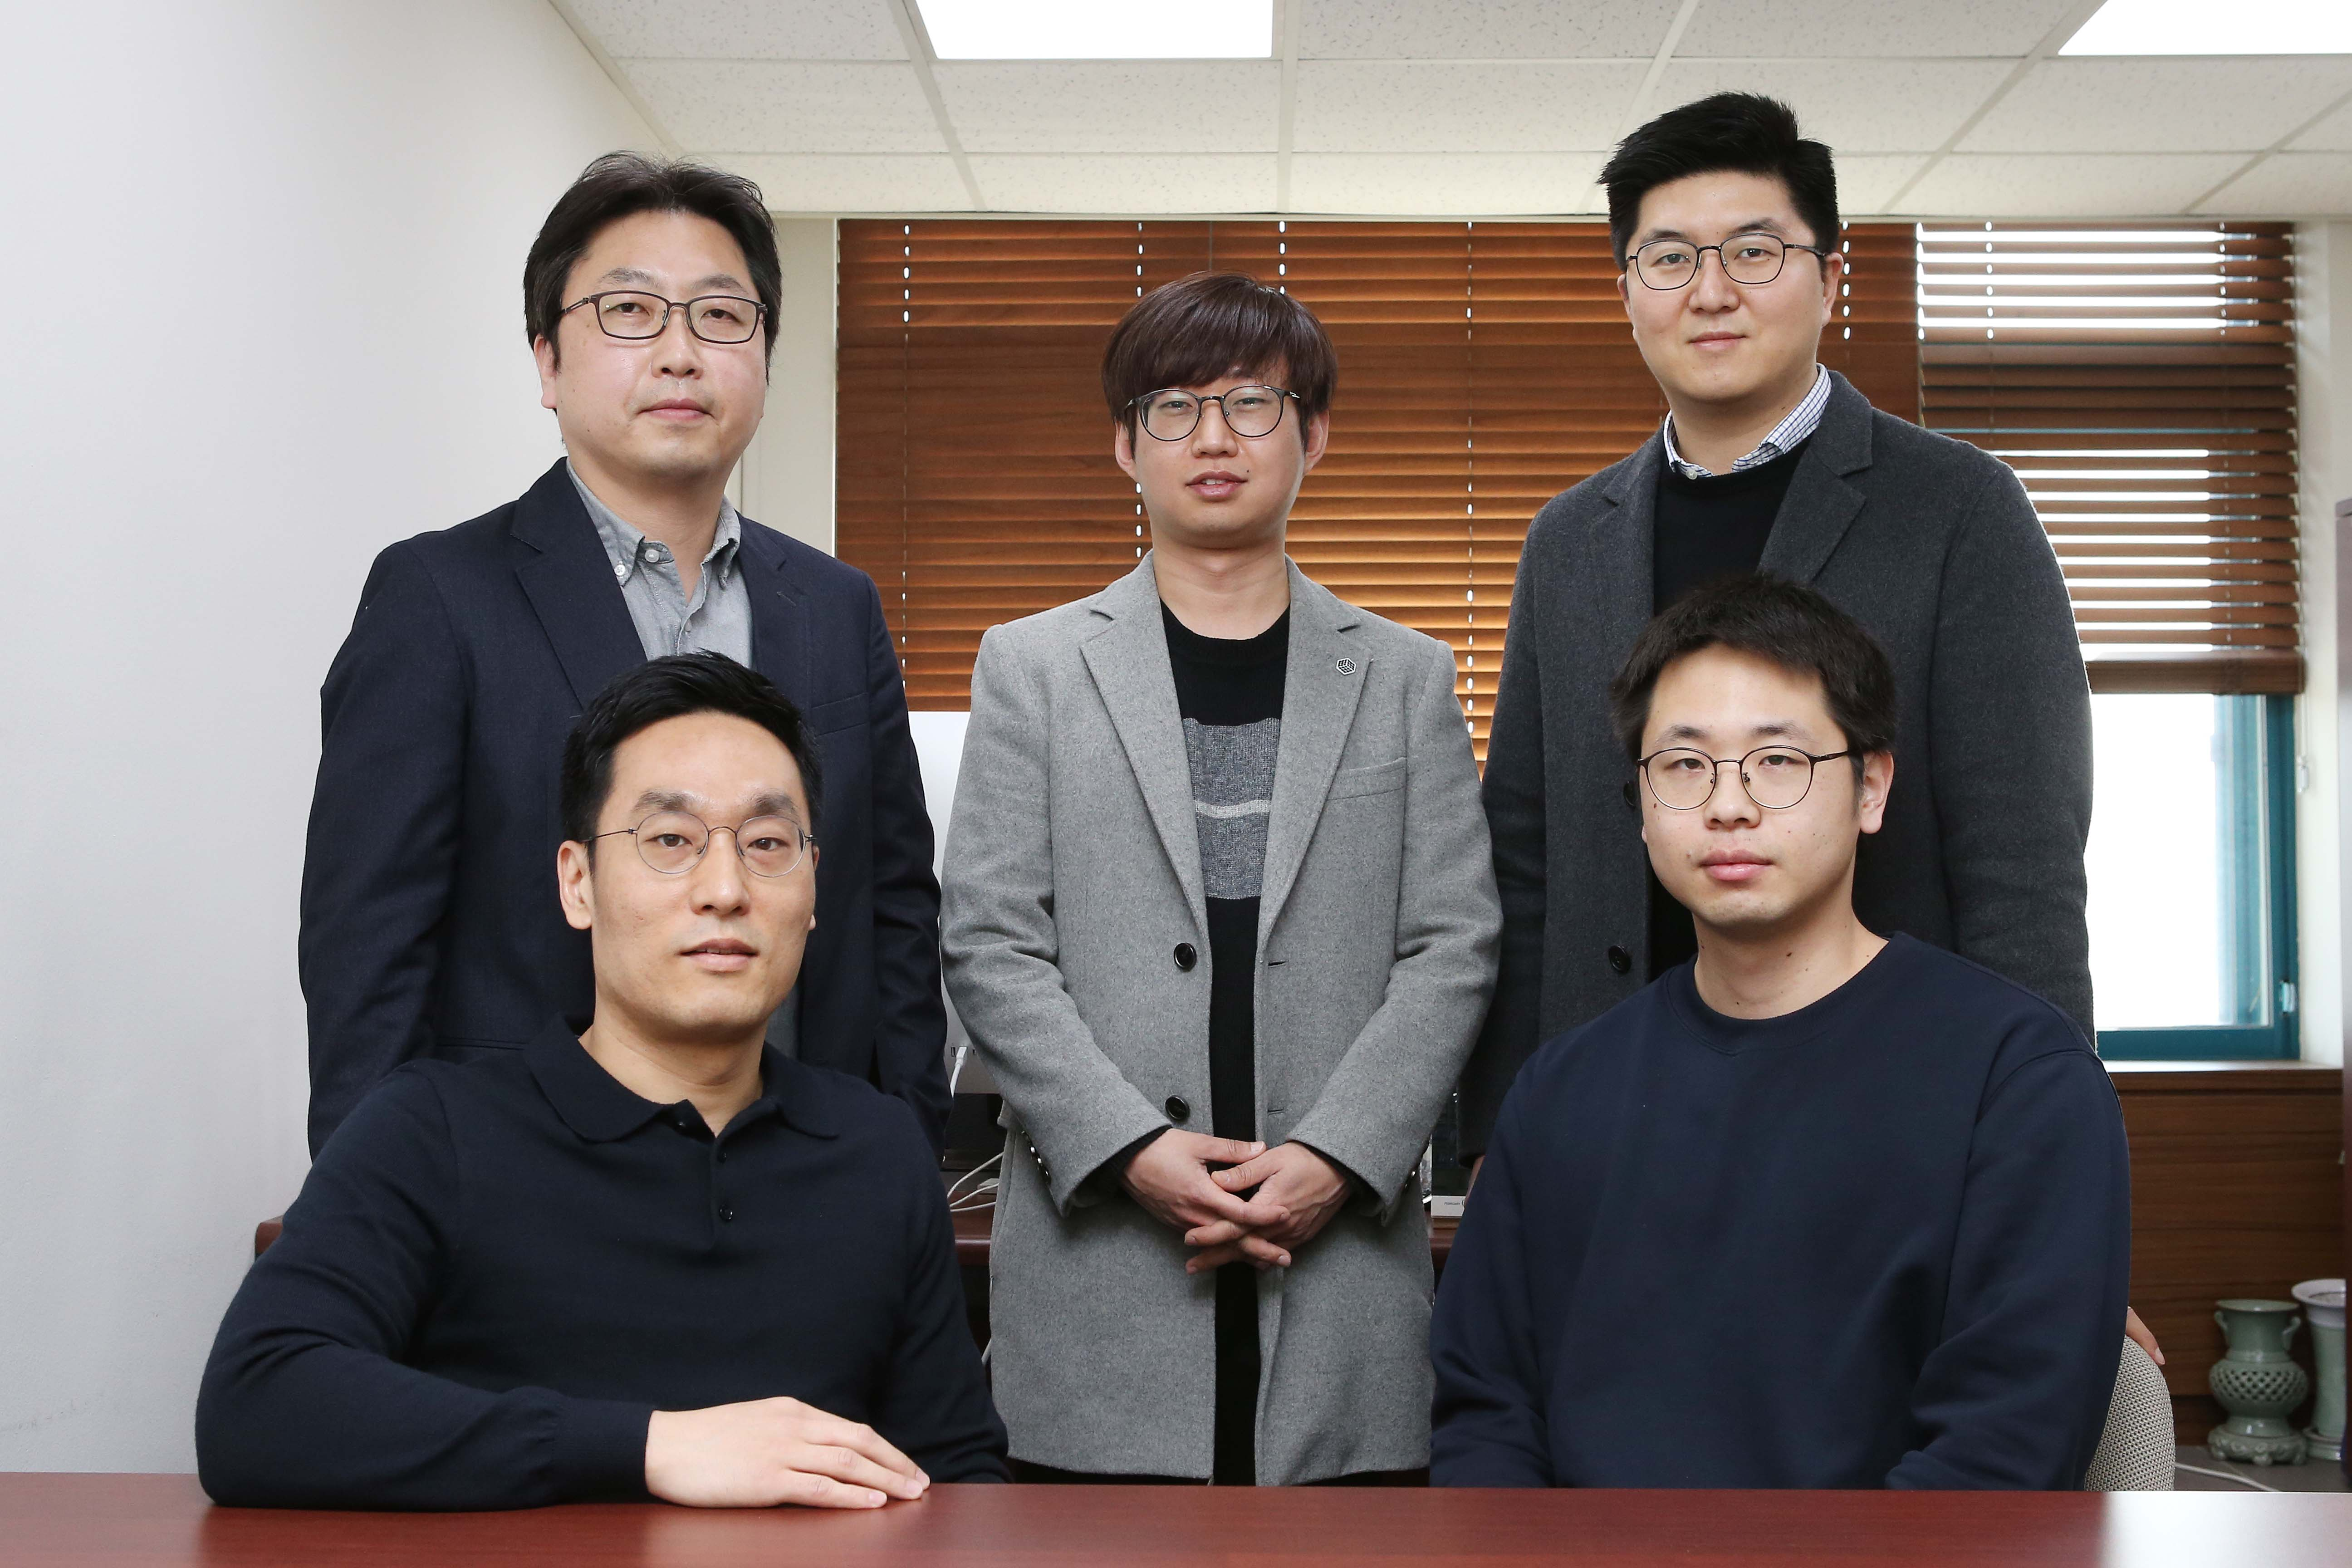 (Front row from left) Professor Byungha Shin (KAIST), and Ph.D. Candidate Daehan Kim (KAIST). (Back row from left) Professor Jin Young Kim (Seoul National University), Dr. Ik Jae Park (Seoul National University), and Professor Dong Hoe Kim (Sejong University).